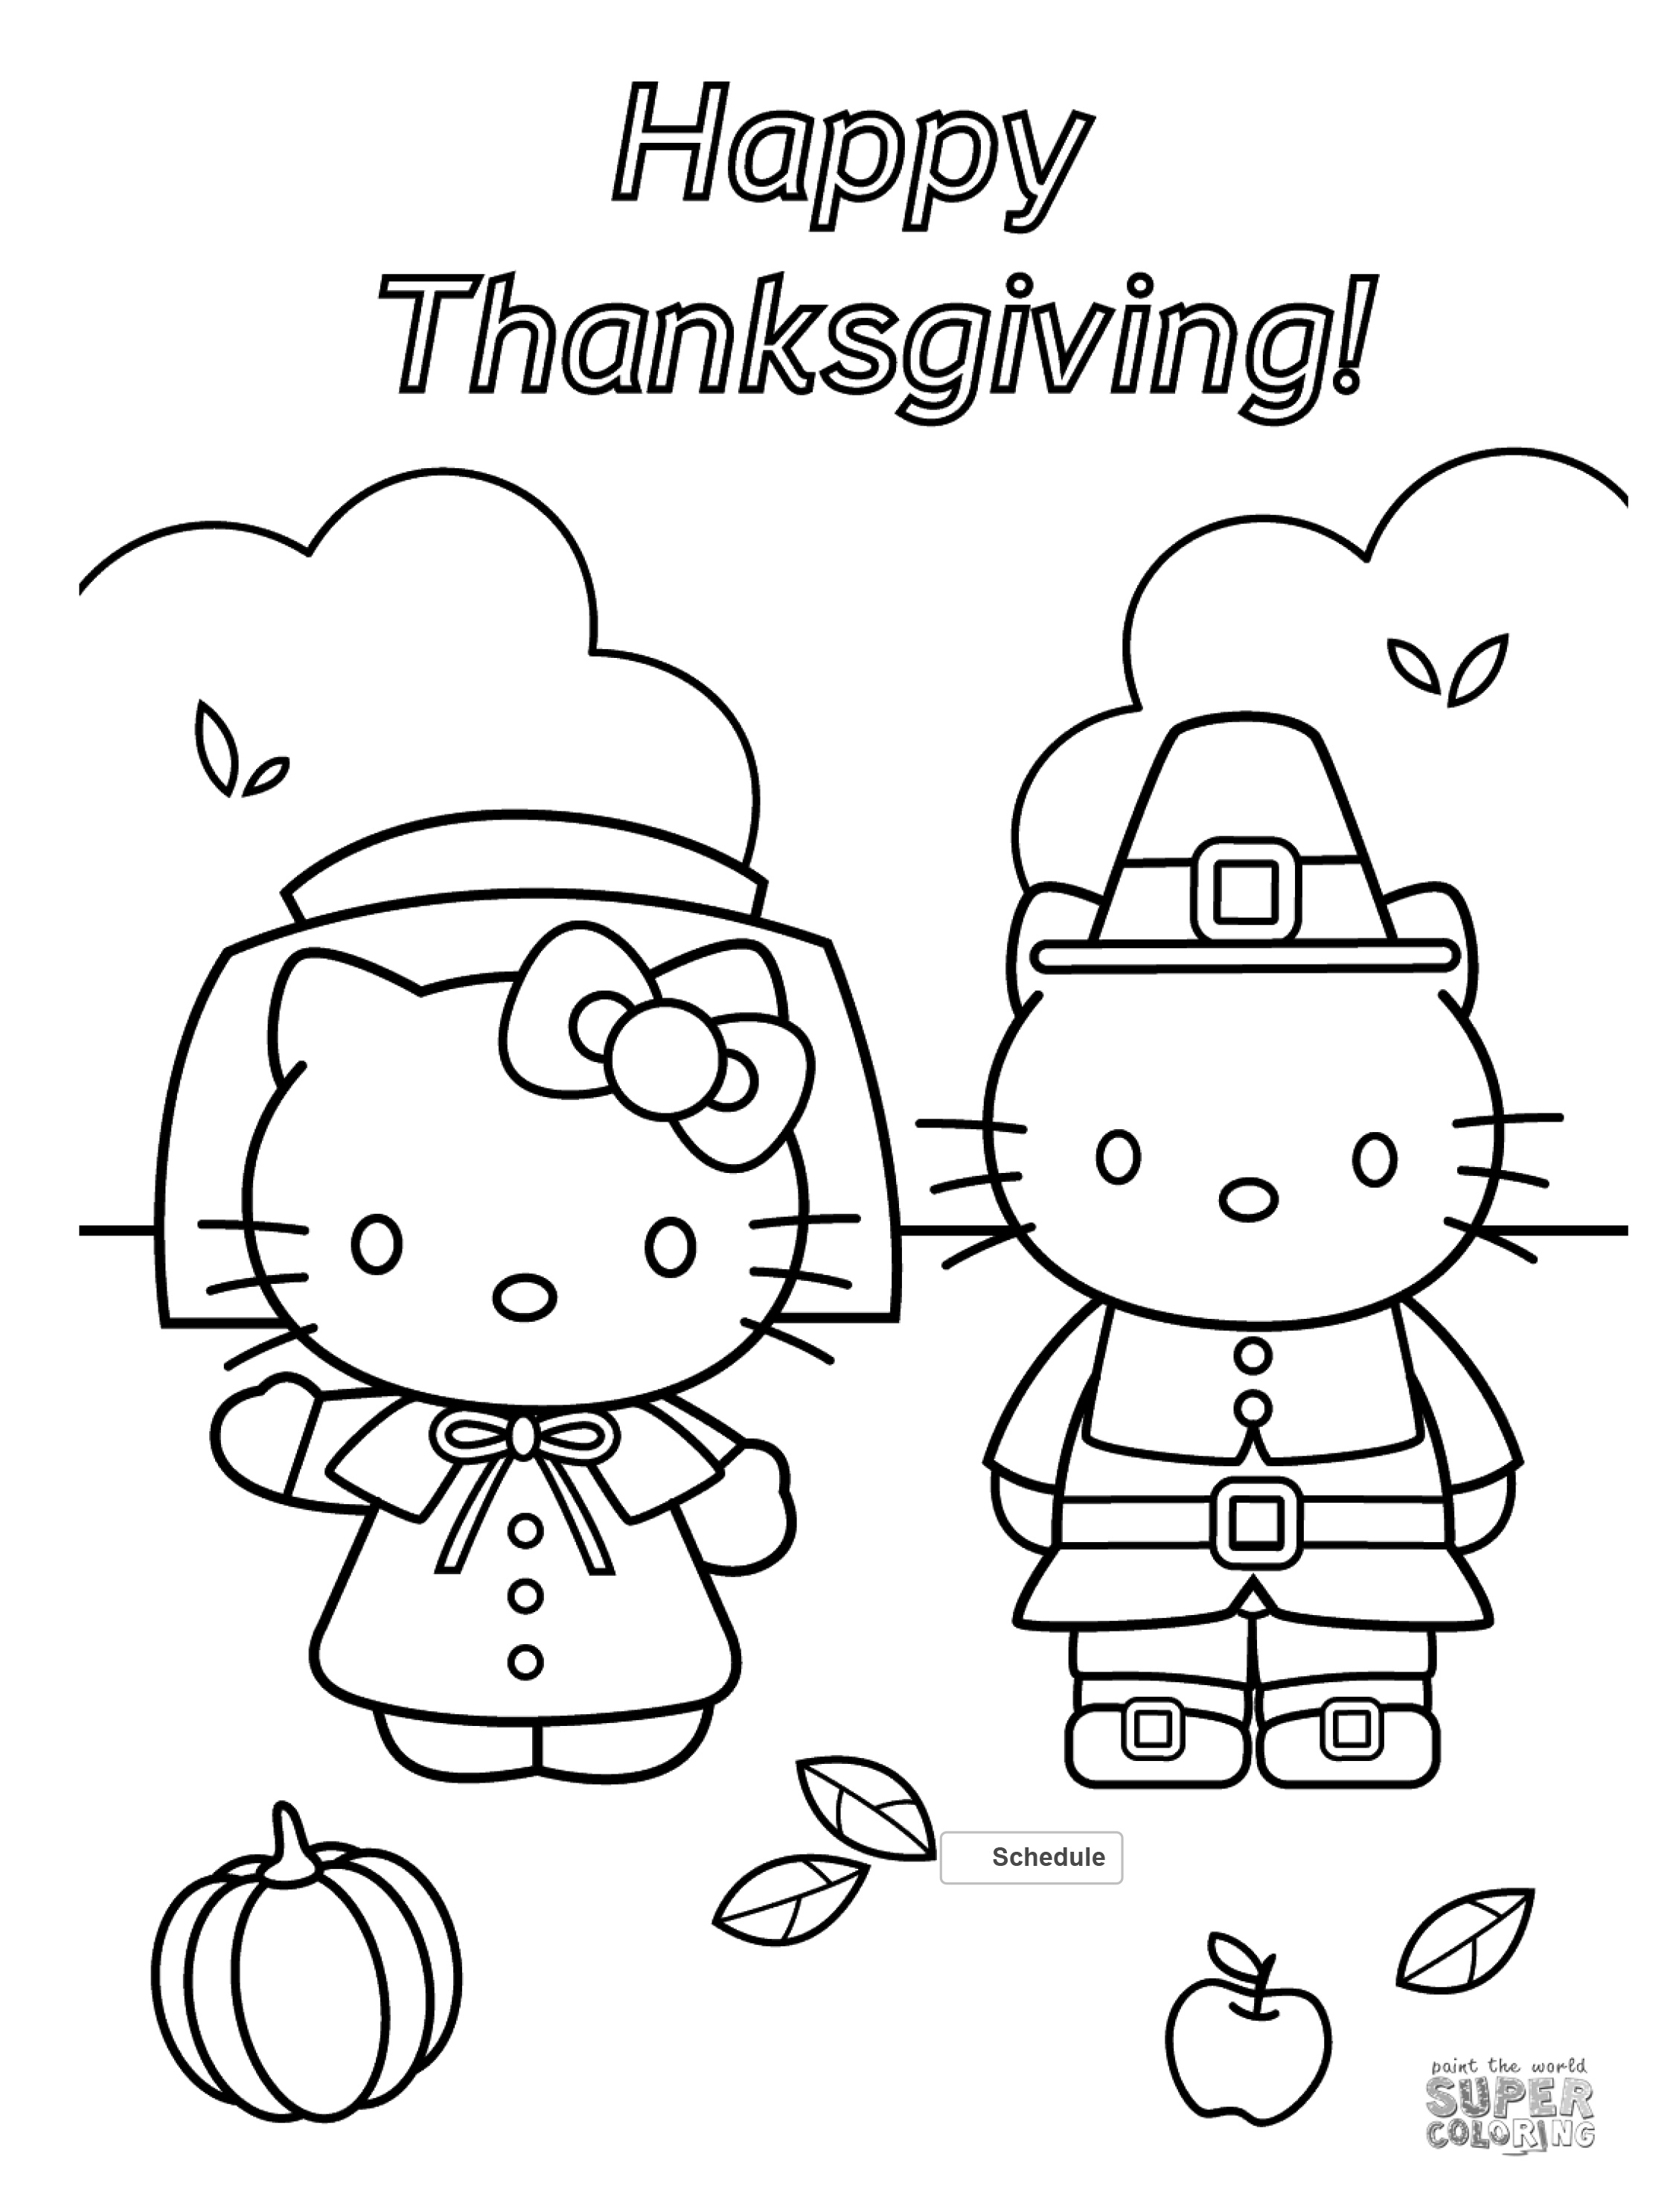 image regarding Free Printable Thanksgiving Coloring Pages named Free of charge Thanksgiving Coloring Web pages for Grown ups Young children